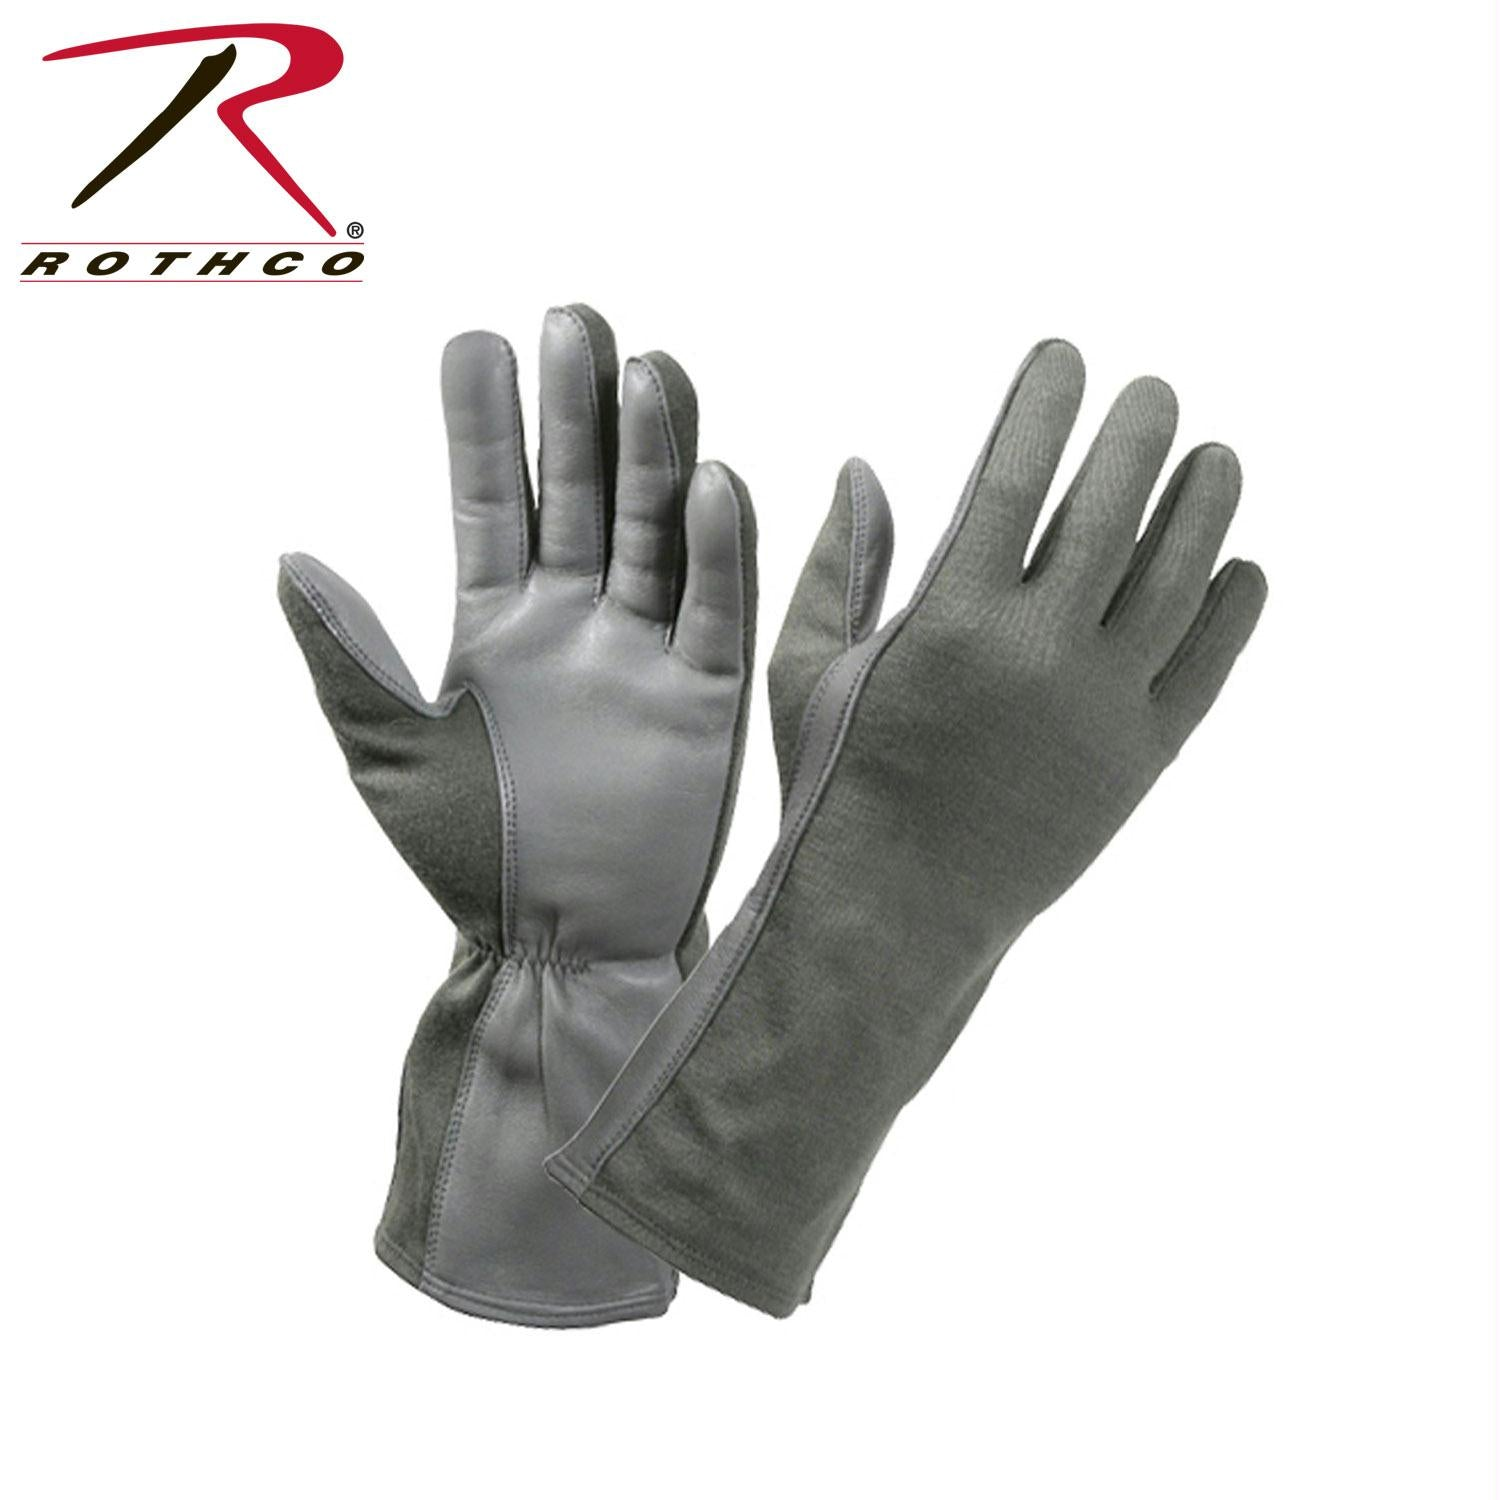 Rothco G.I. Type Flame & Heat Resistant Flight Gloves - Foliage Green / 11